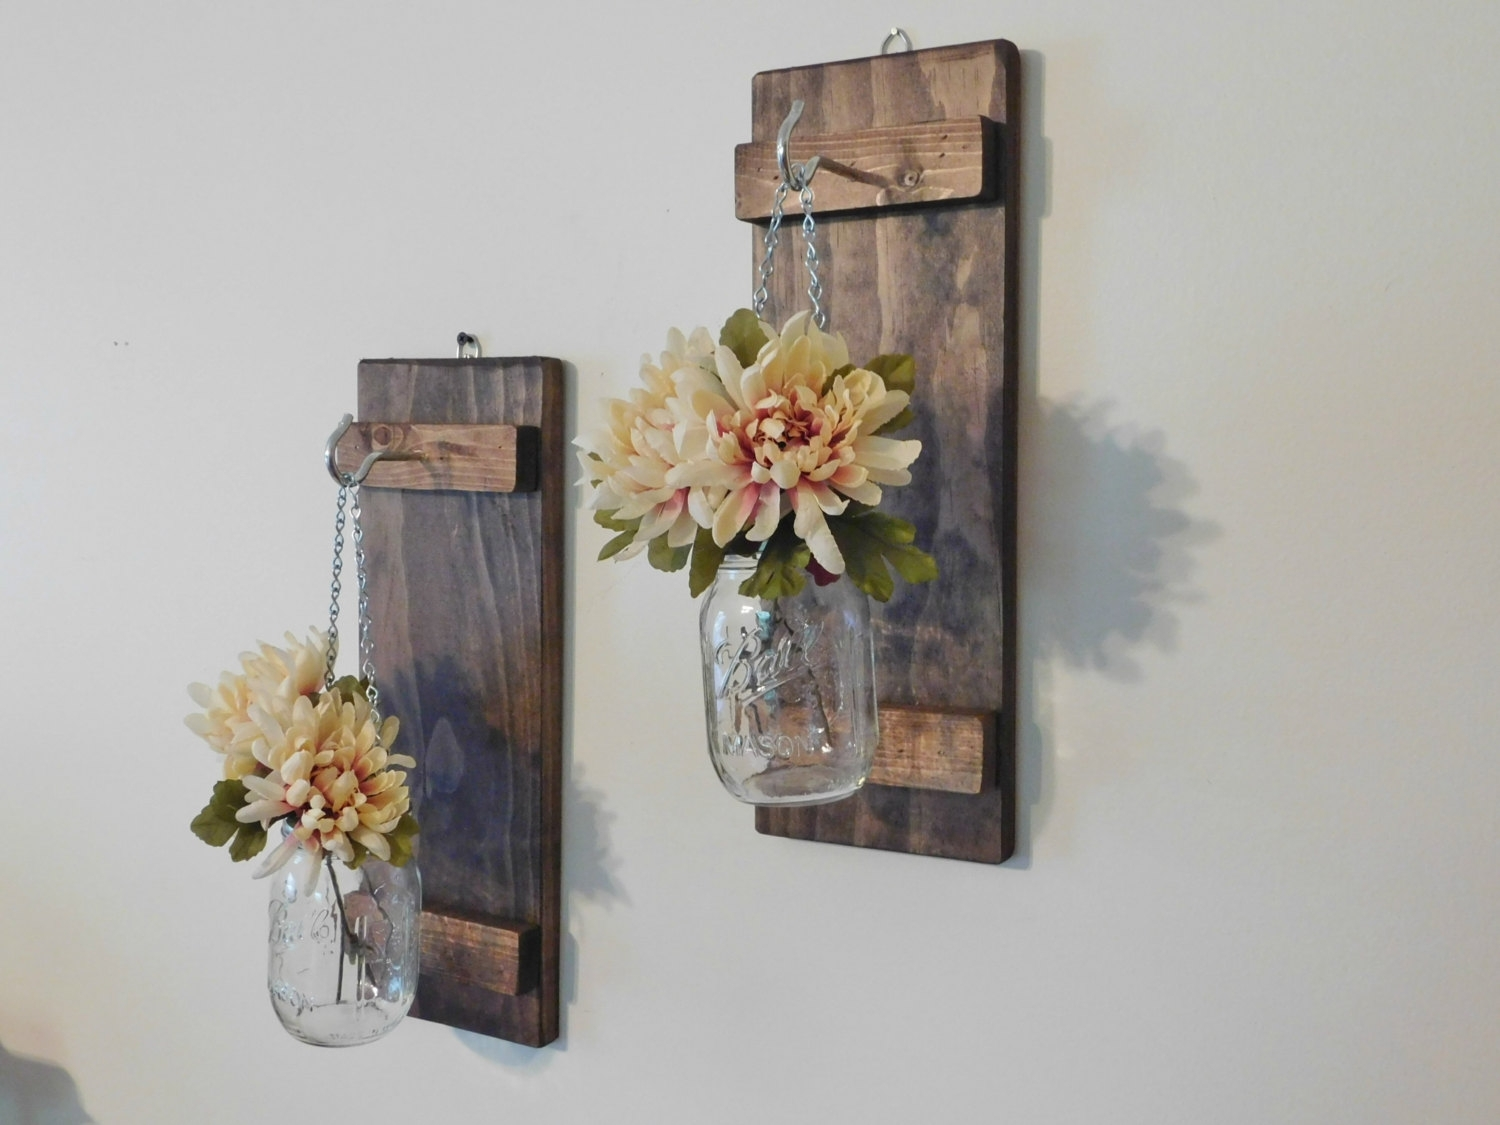 Hanging Mason Jar Wall Sconce Flower Vase Candle Sconce Wall, Mason throughout Mason Jar Wall Art (Image 7 of 20)